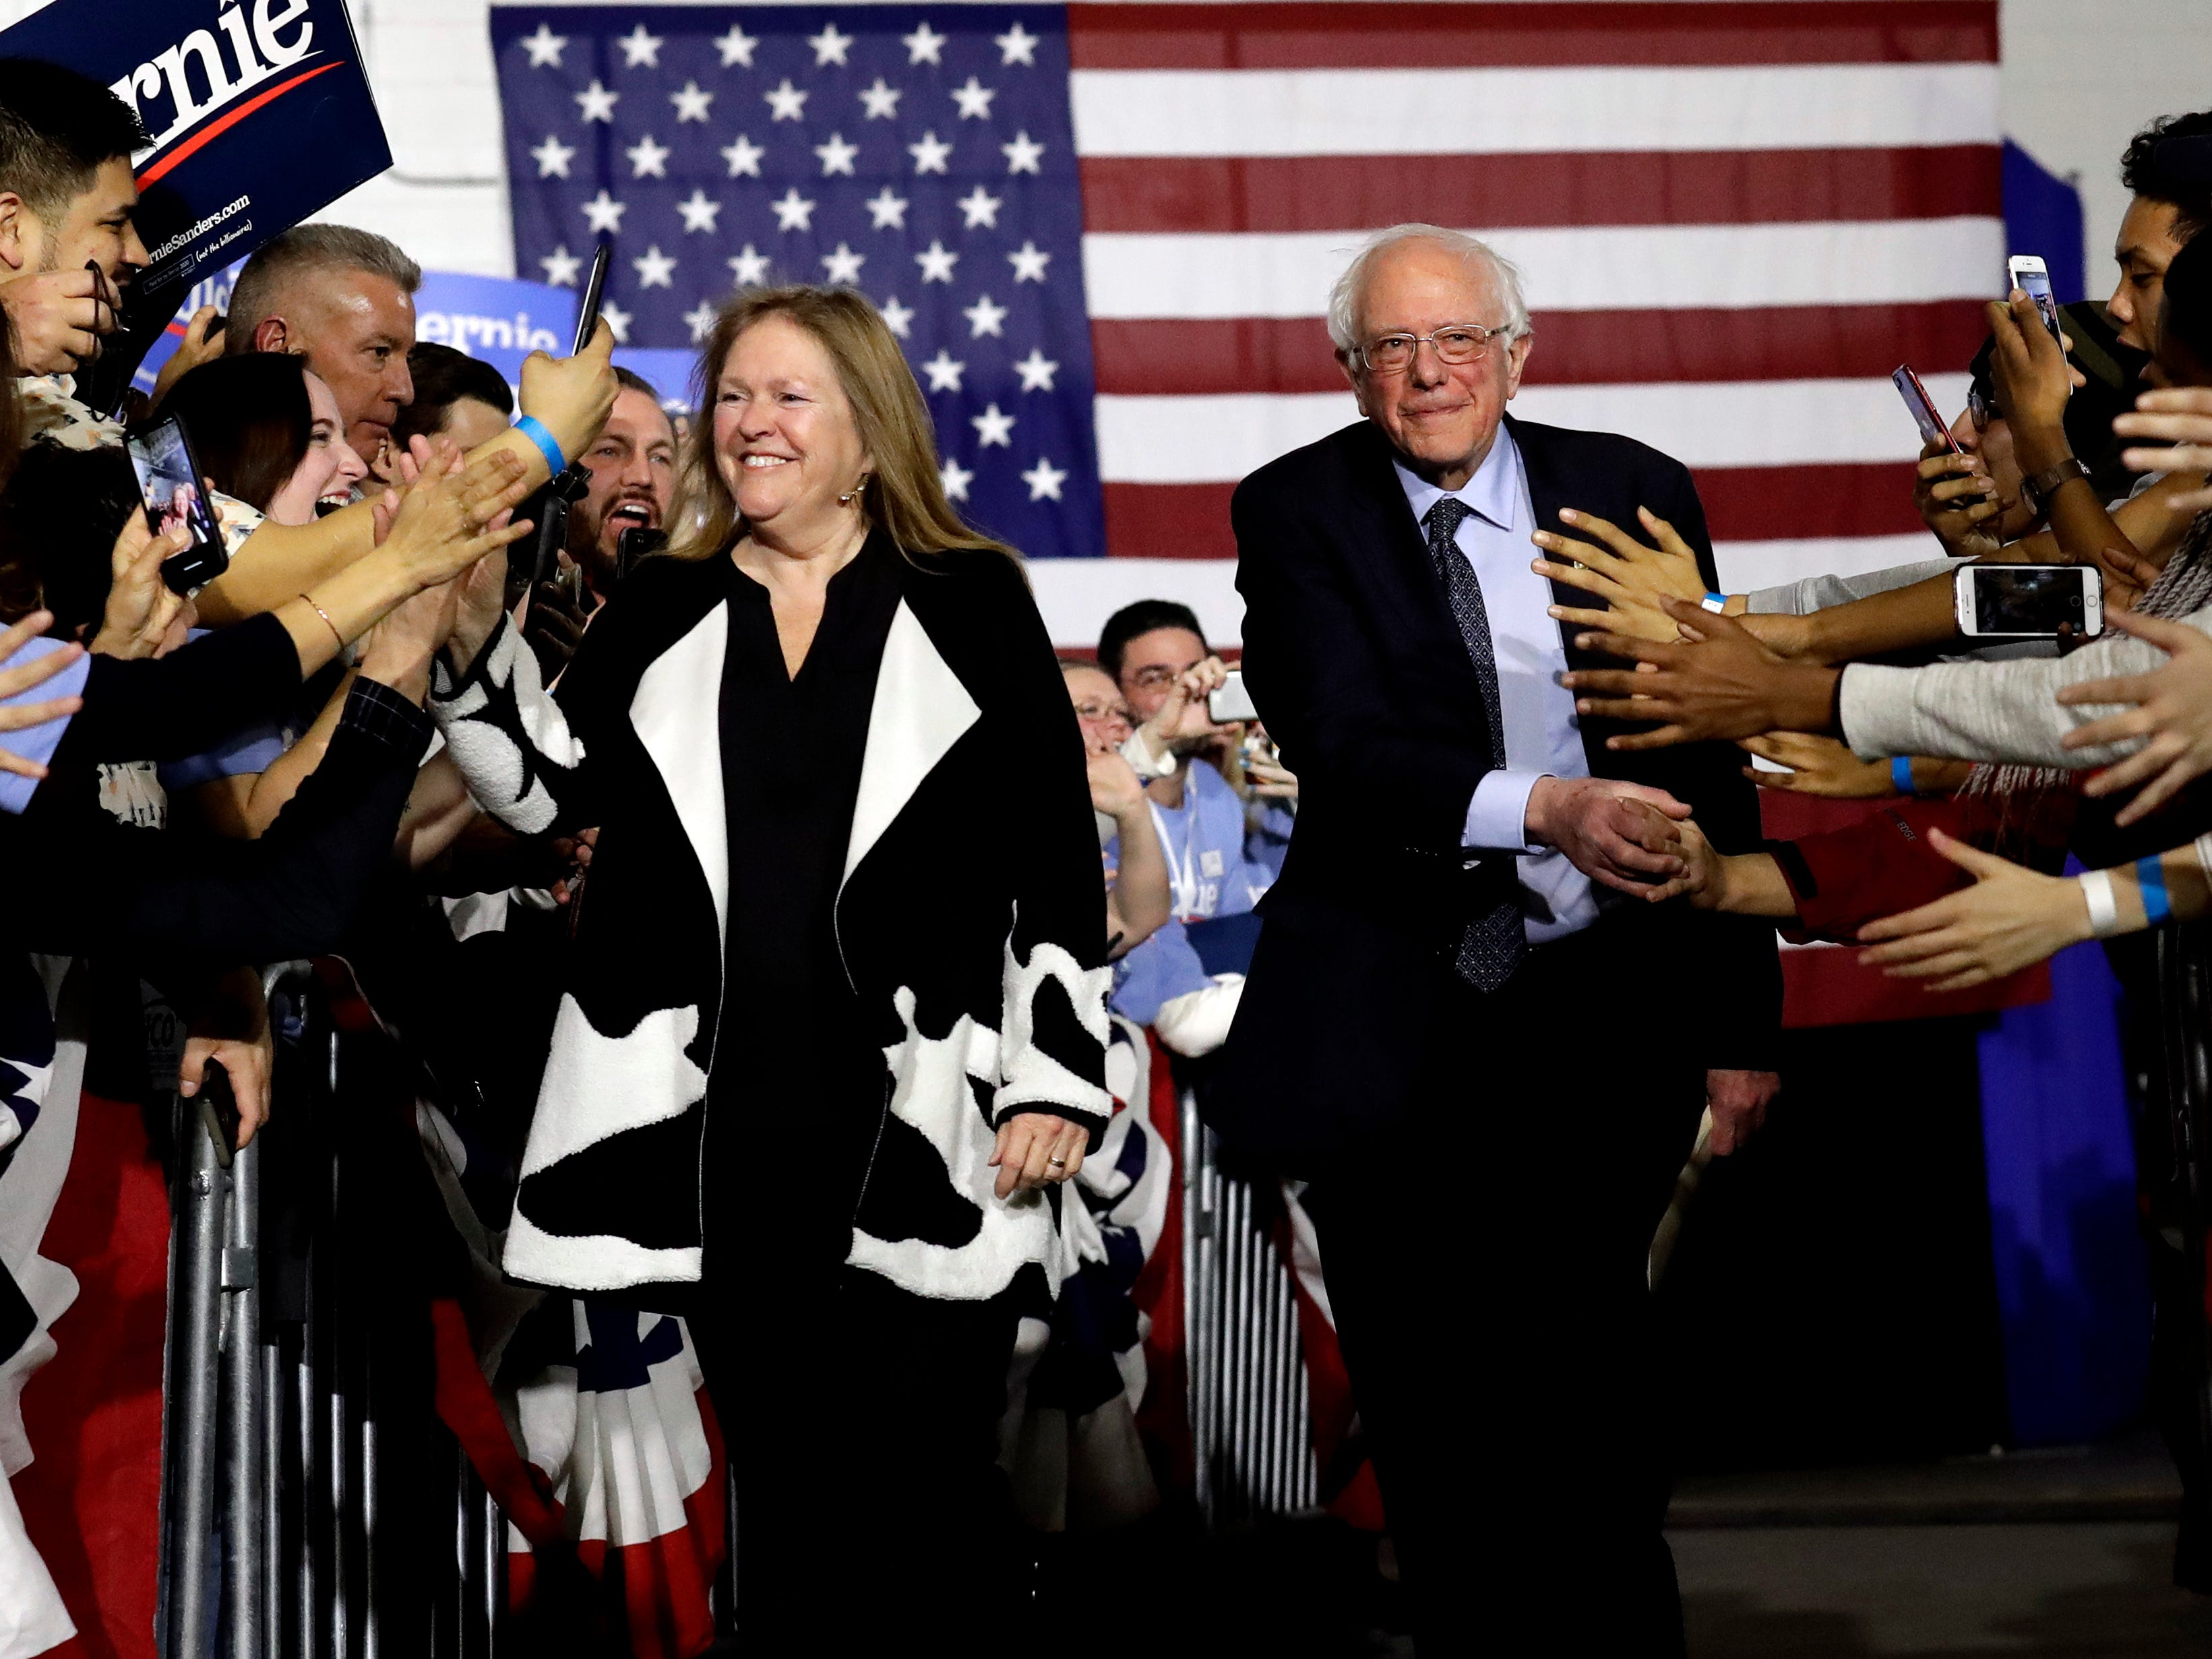 Sen. Bernie Sanders, I-Vt., right, and his wife Jane O'Meara Sanders, greet to supporters as they arrive arrive for Bernie Sanders' 2020 presidential campaign at Navy Pier in Chicago, Sunday, March 3, 2019. Over the next several weeks, Sanders will travel to Iowa, New Hampshire, South Carolina, Nevada, and California. He will then return to Burlington, Vt., for the official launch of his campaign.